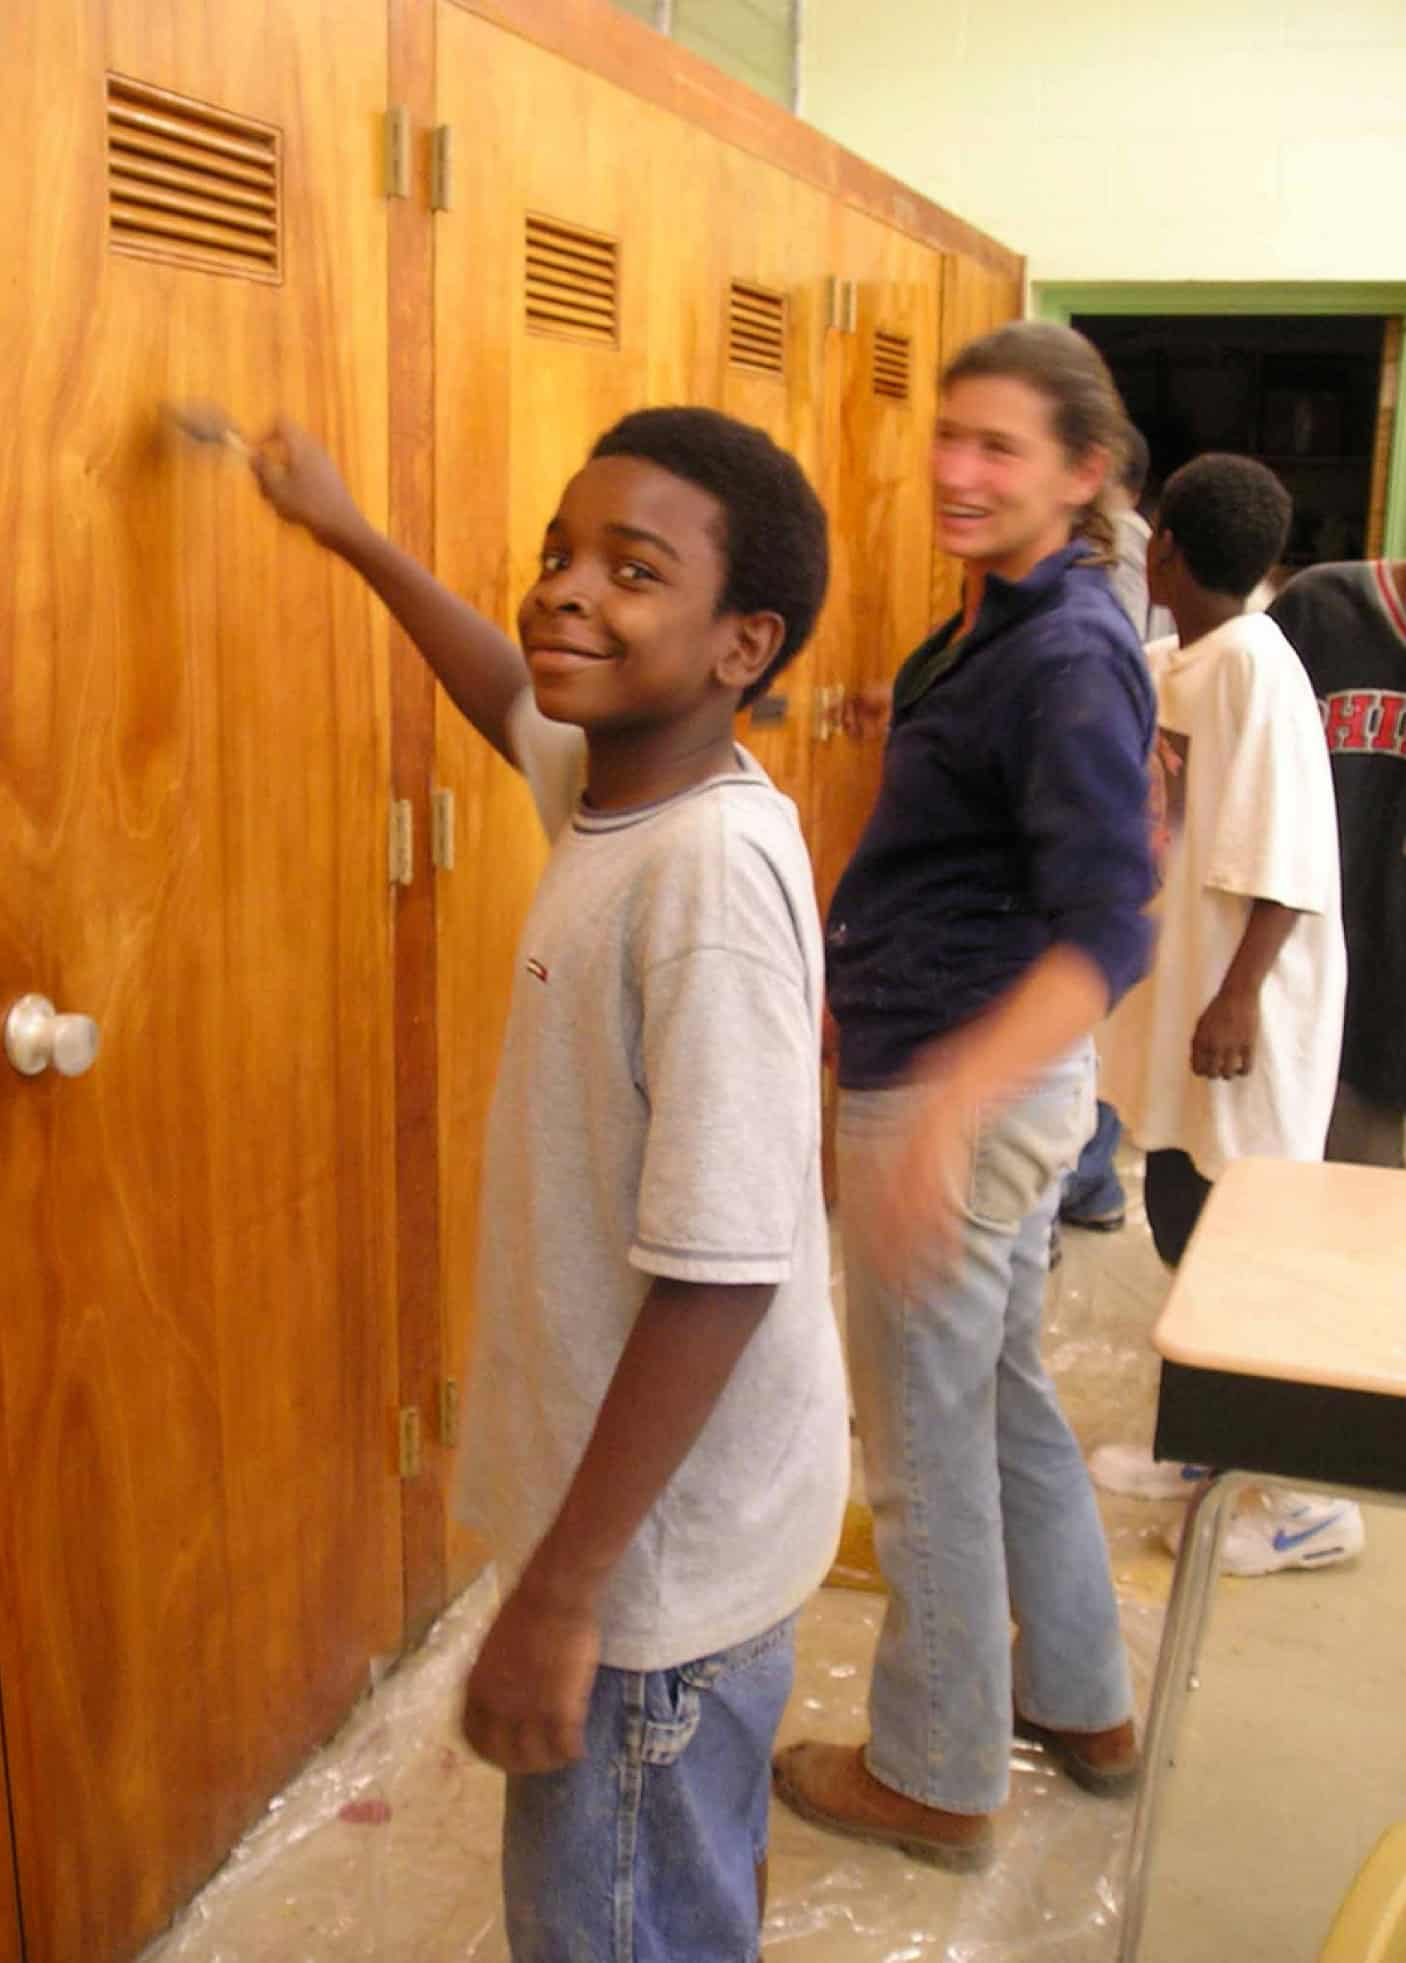 young student and RS student paint lockers together